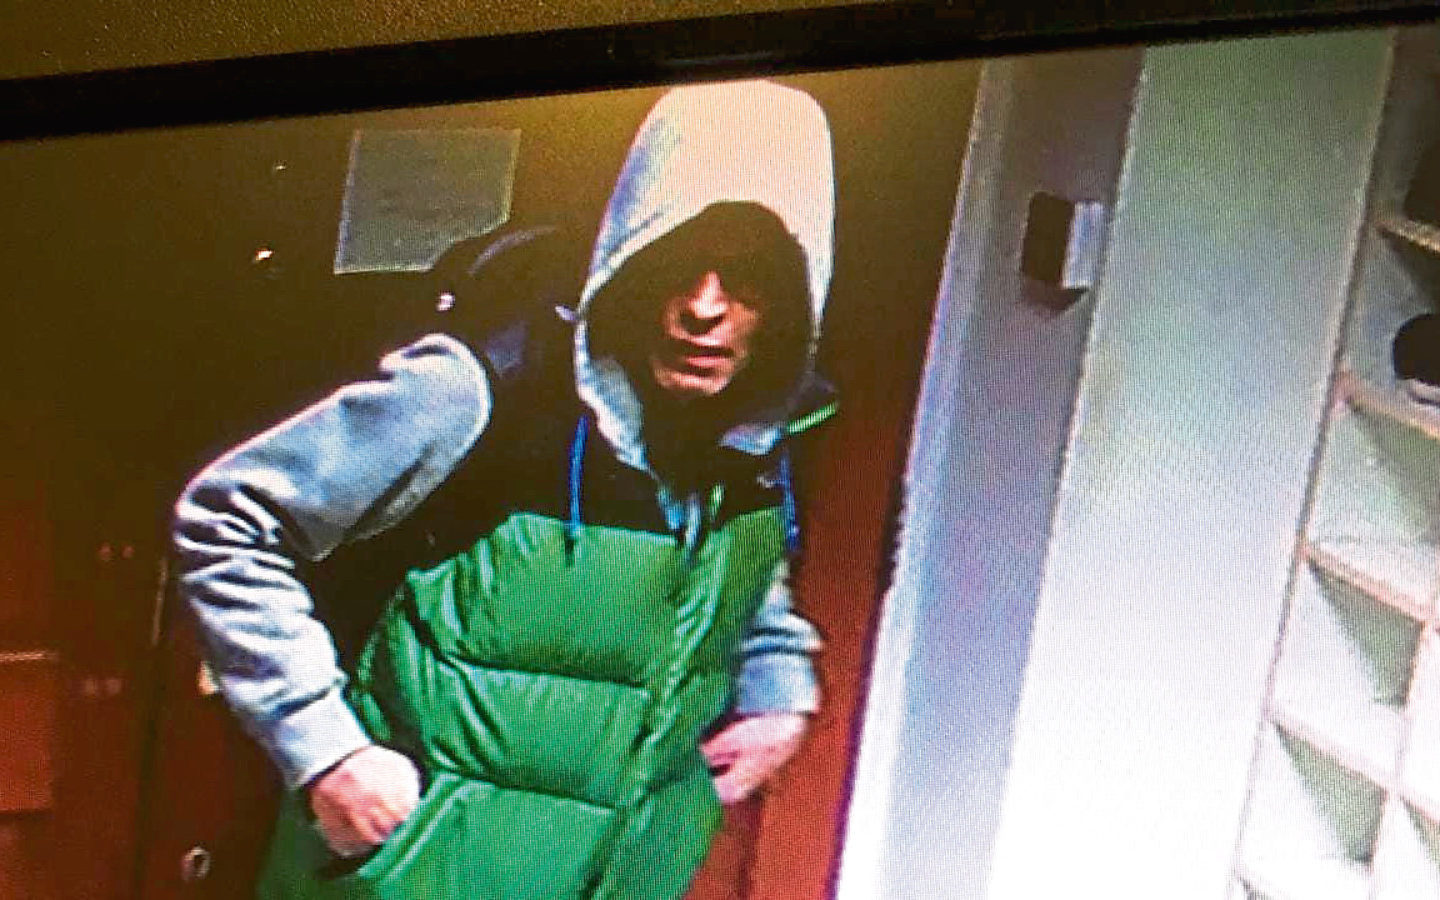 Images taken from CCTV show a man wanted in connection with a theft  at Aberdeen Mosque